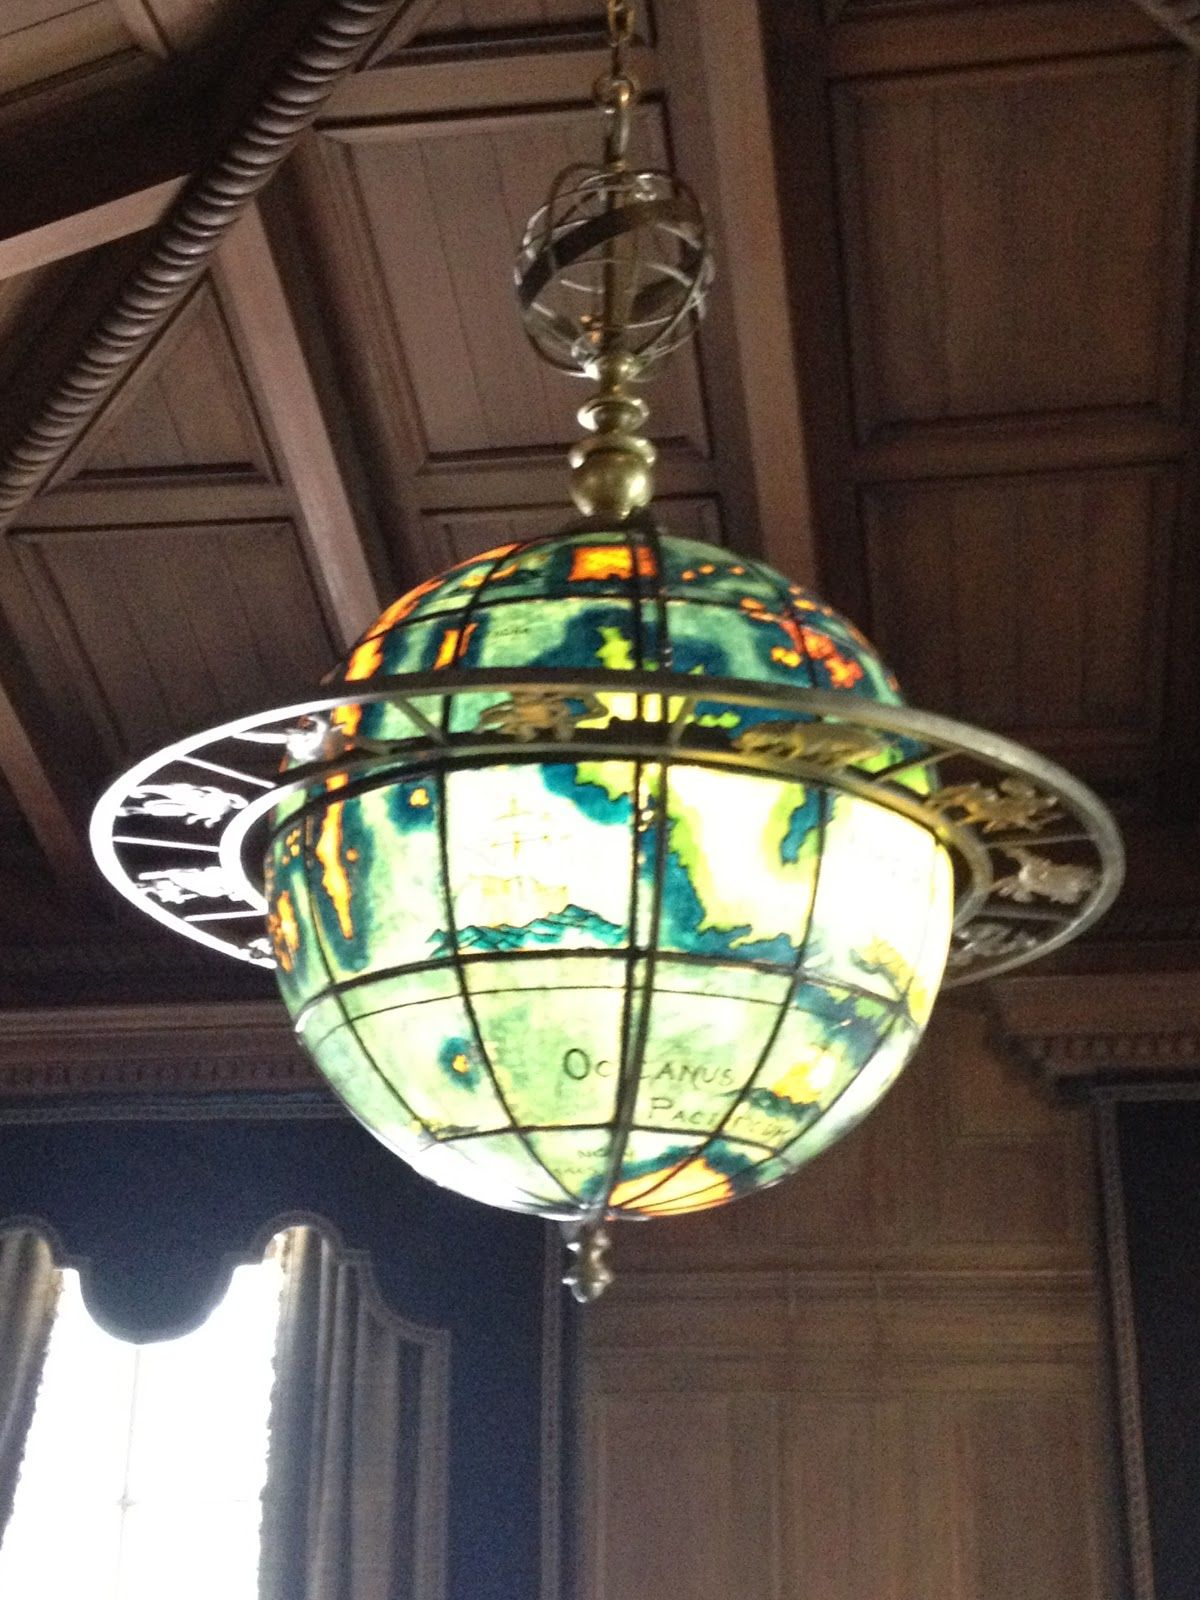 Global lighting lamps lights and stars pinterest globe one of my favorite things at philbrook art museum tulsa ok world globes map decor never get lost again gumiabroncs Images